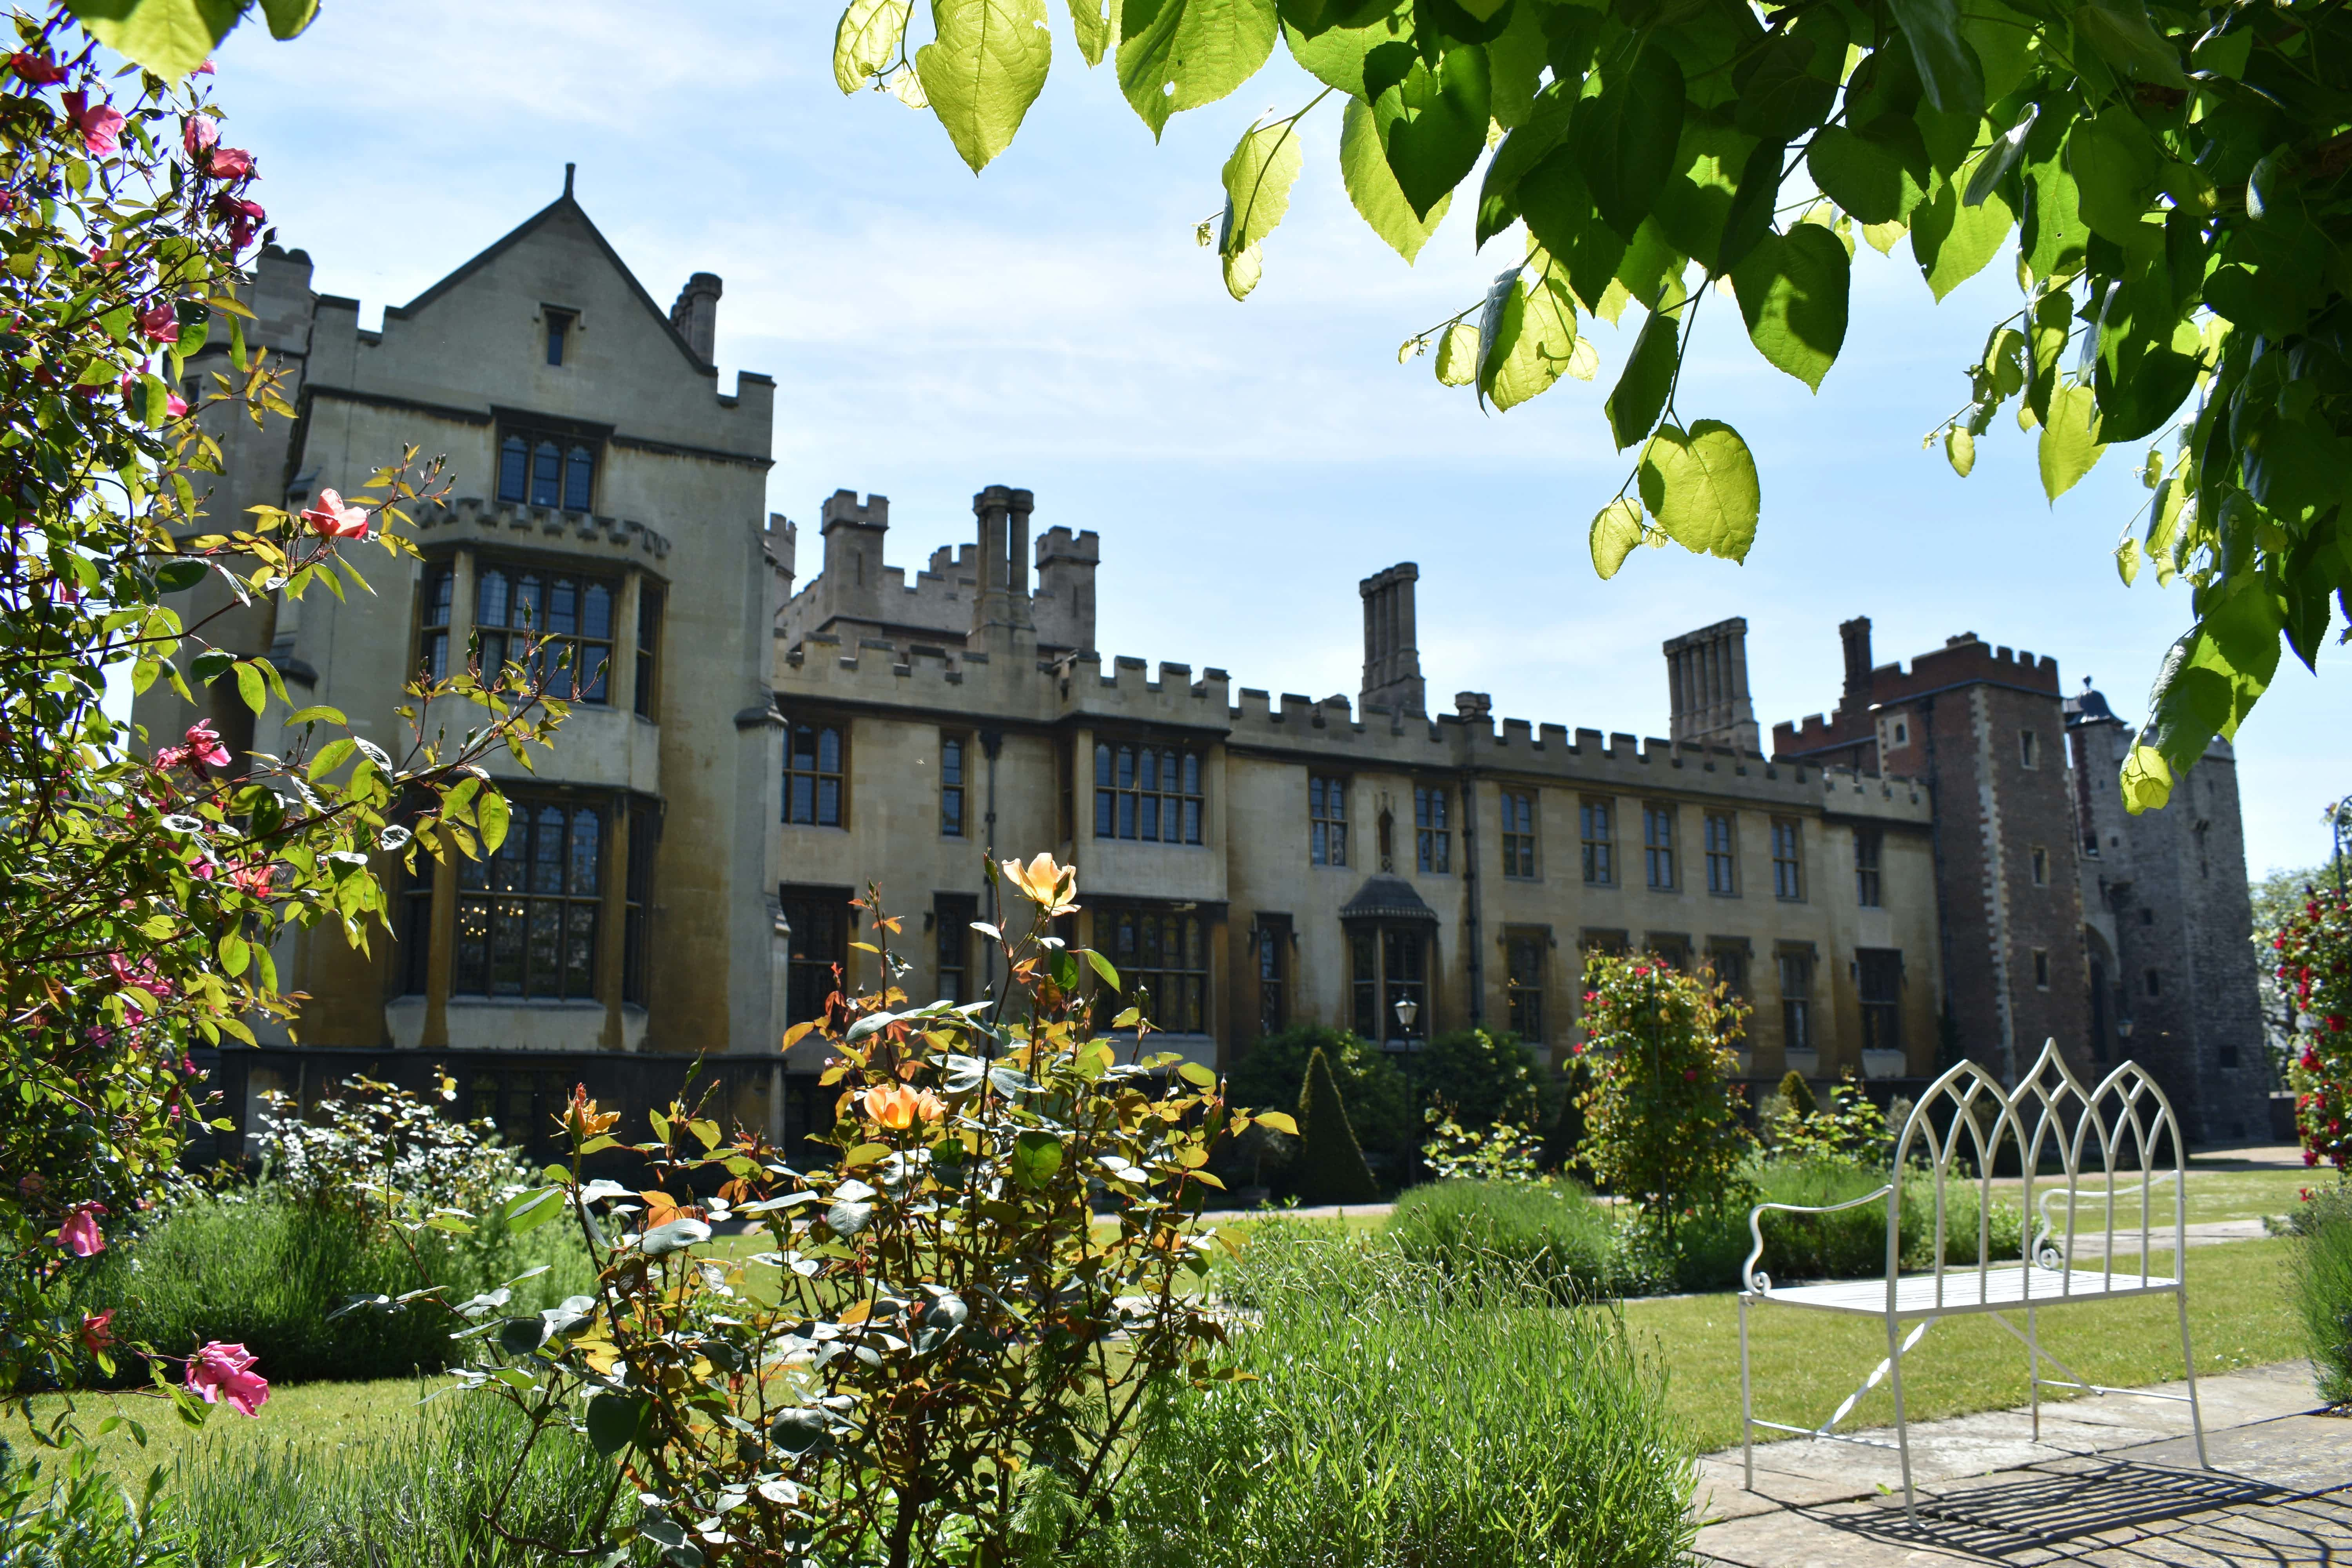 Gardens and Marquee, Lambeth Palace